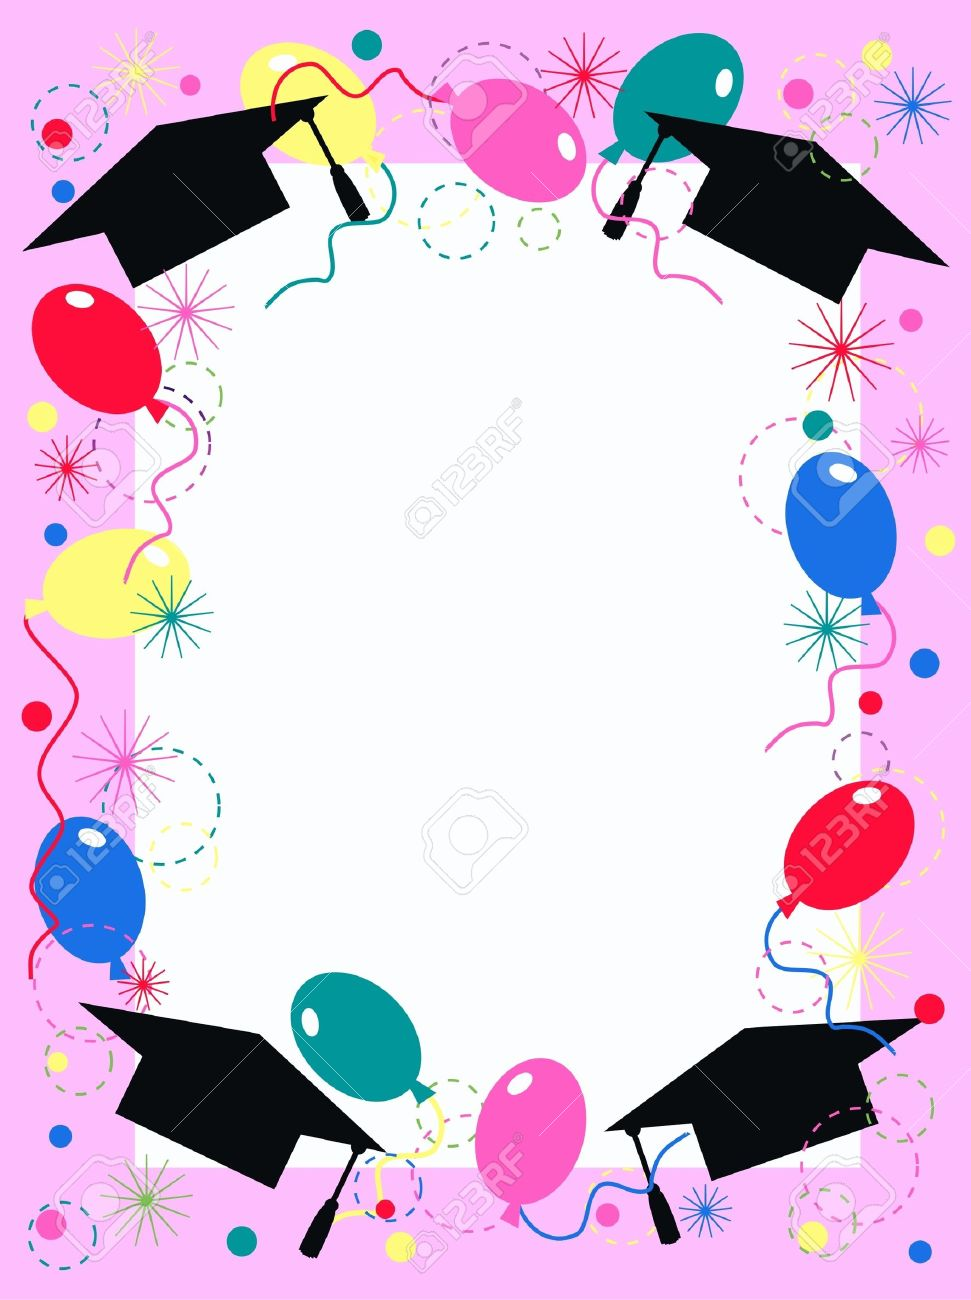 Graduation invitation or celebration card royalty free cliparts graduation invitation or celebration card stock vector 10787418 stopboris Choice Image